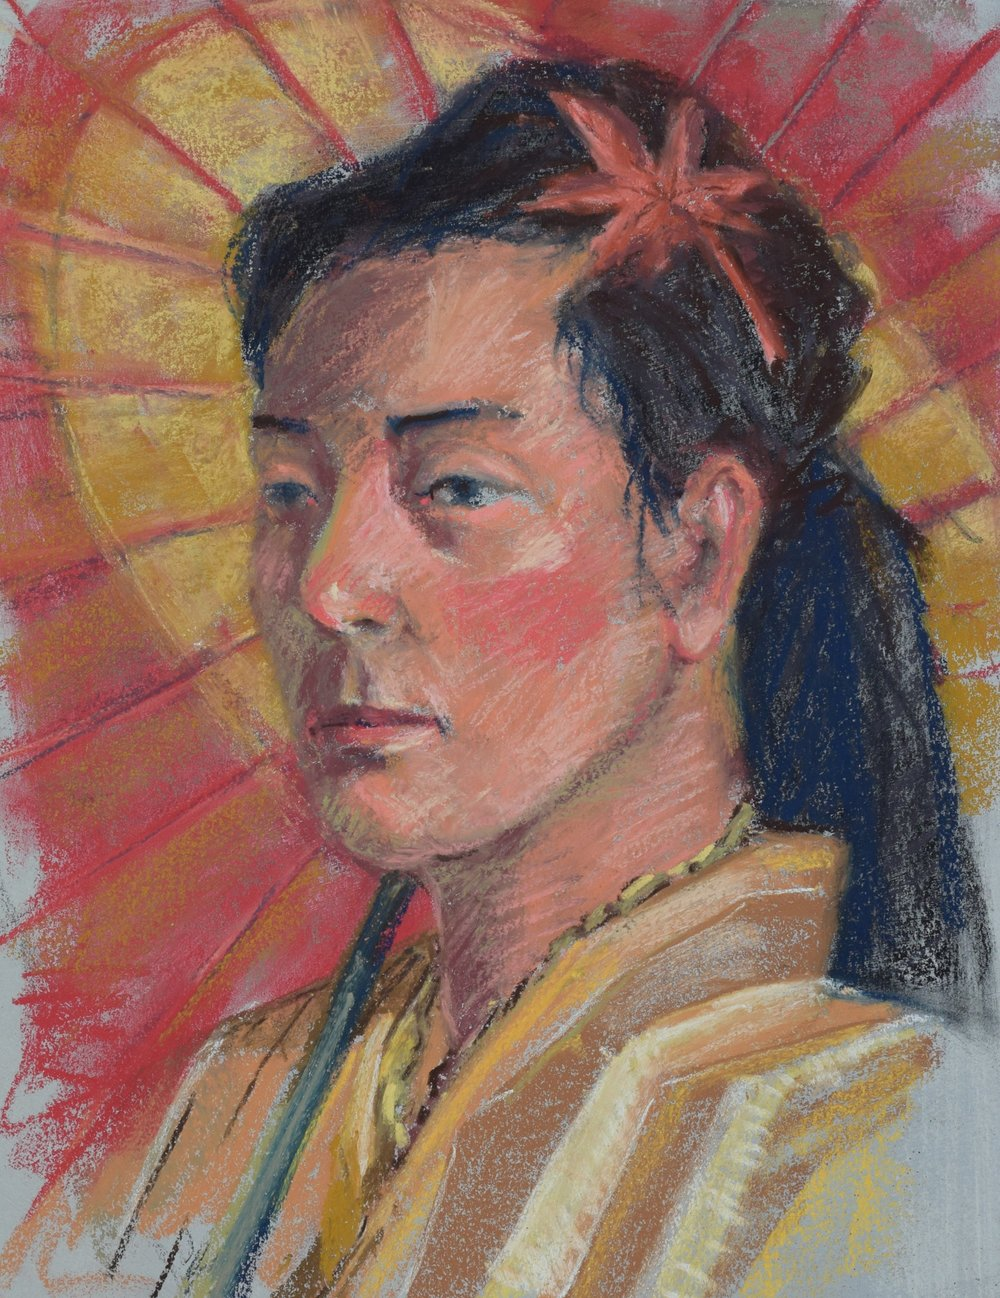 portrait (2016)  Pastel on toned paper, 12x16